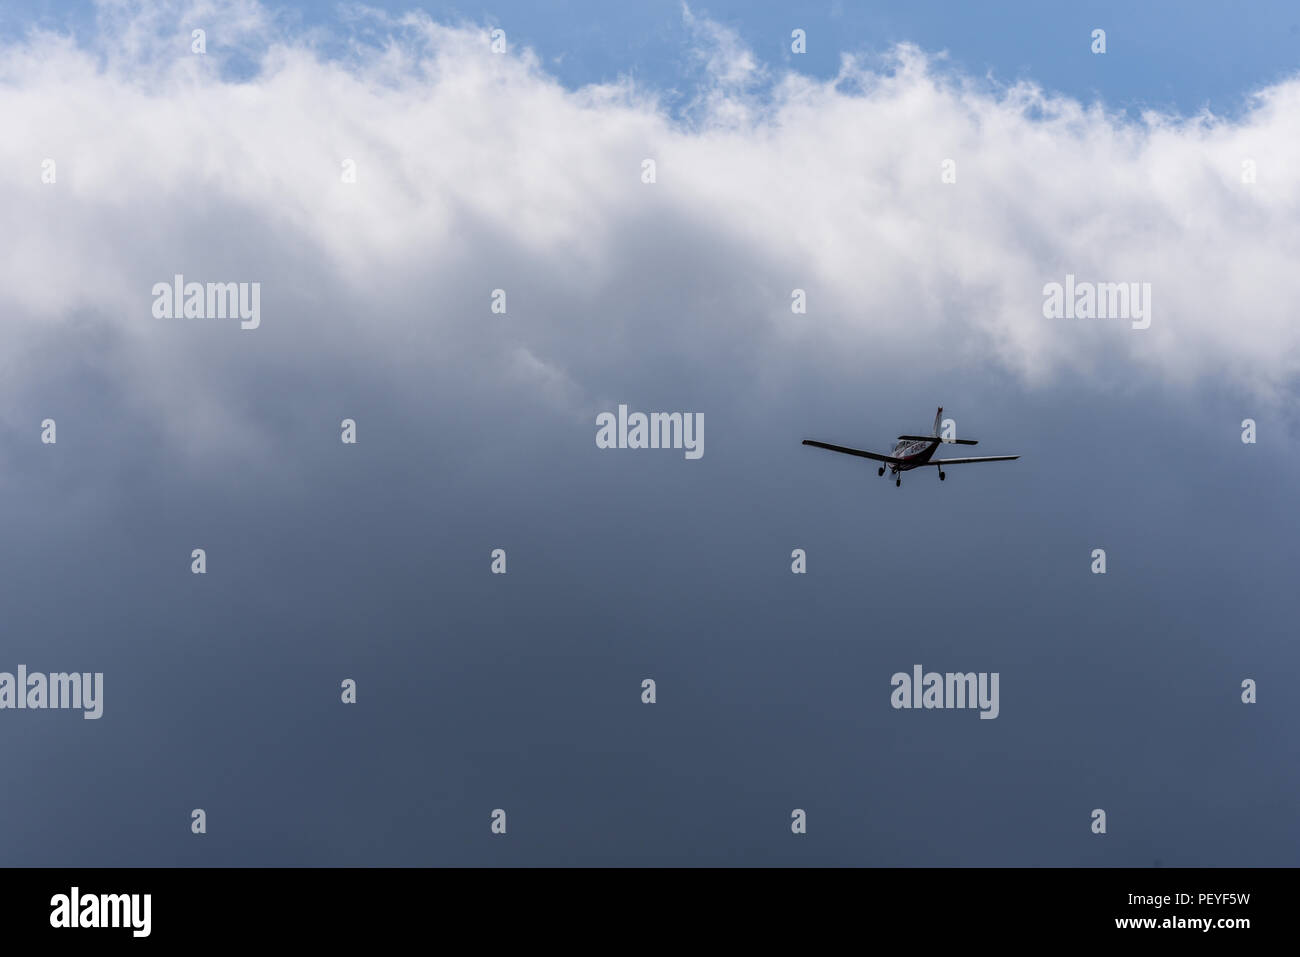 flying-into-weather-in-single-light-aircraft-small-ga-general-aviation-plane-flying-towards-clouds-visual-meteorological-conditions-private-flying-PEYF5W.jpg